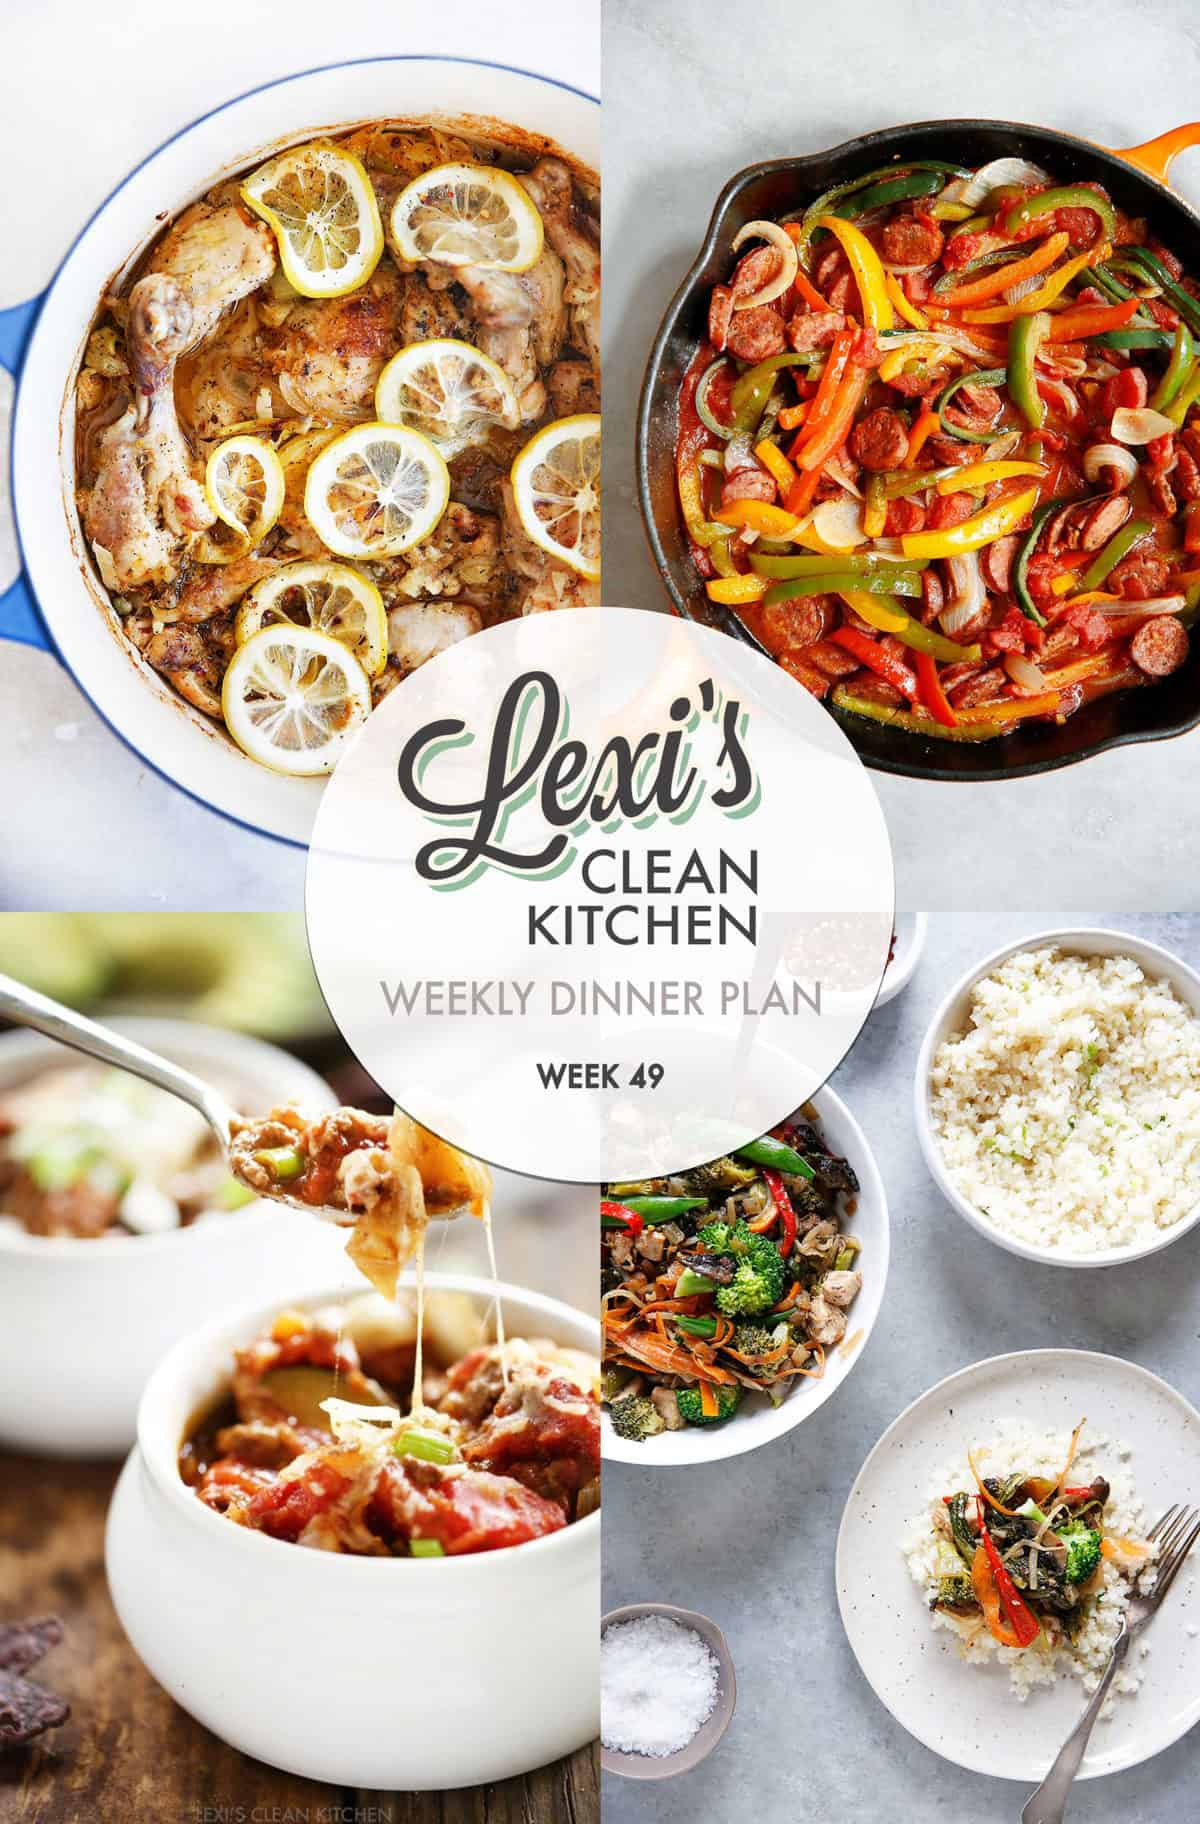 Weekly Dinner Plan Week 49 | Lexi's Clean Kitchen